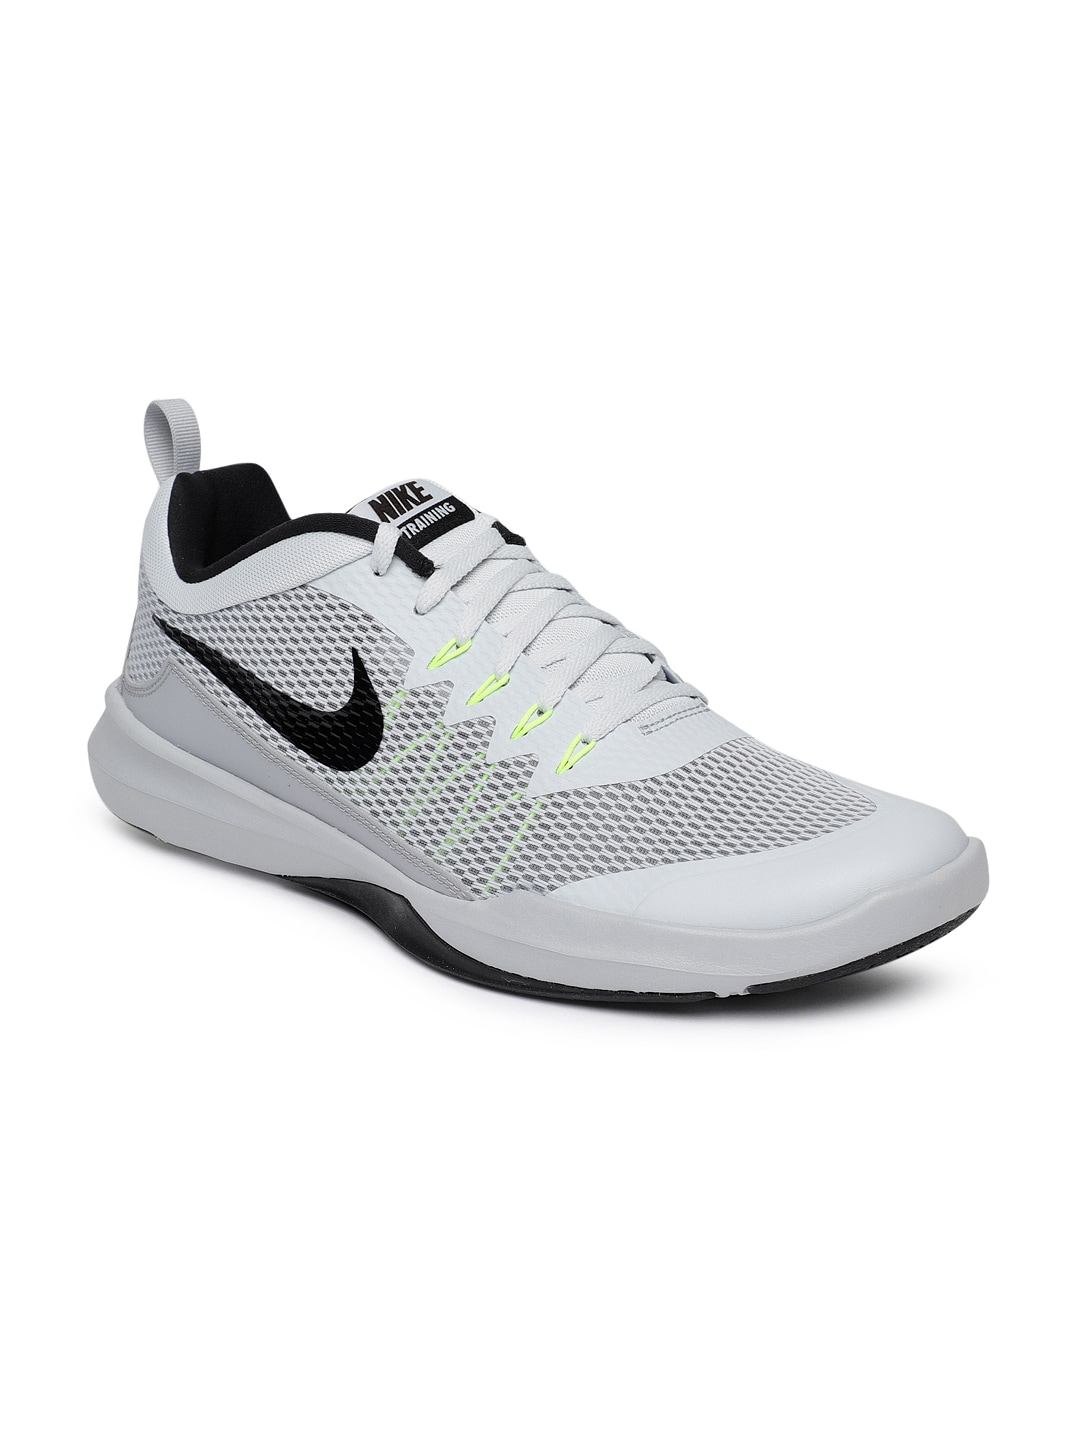 timeless design 913e1 a5af5 Nike Shoes - Buy Nike Shoes for Men, Women   Kids Online   Myntra